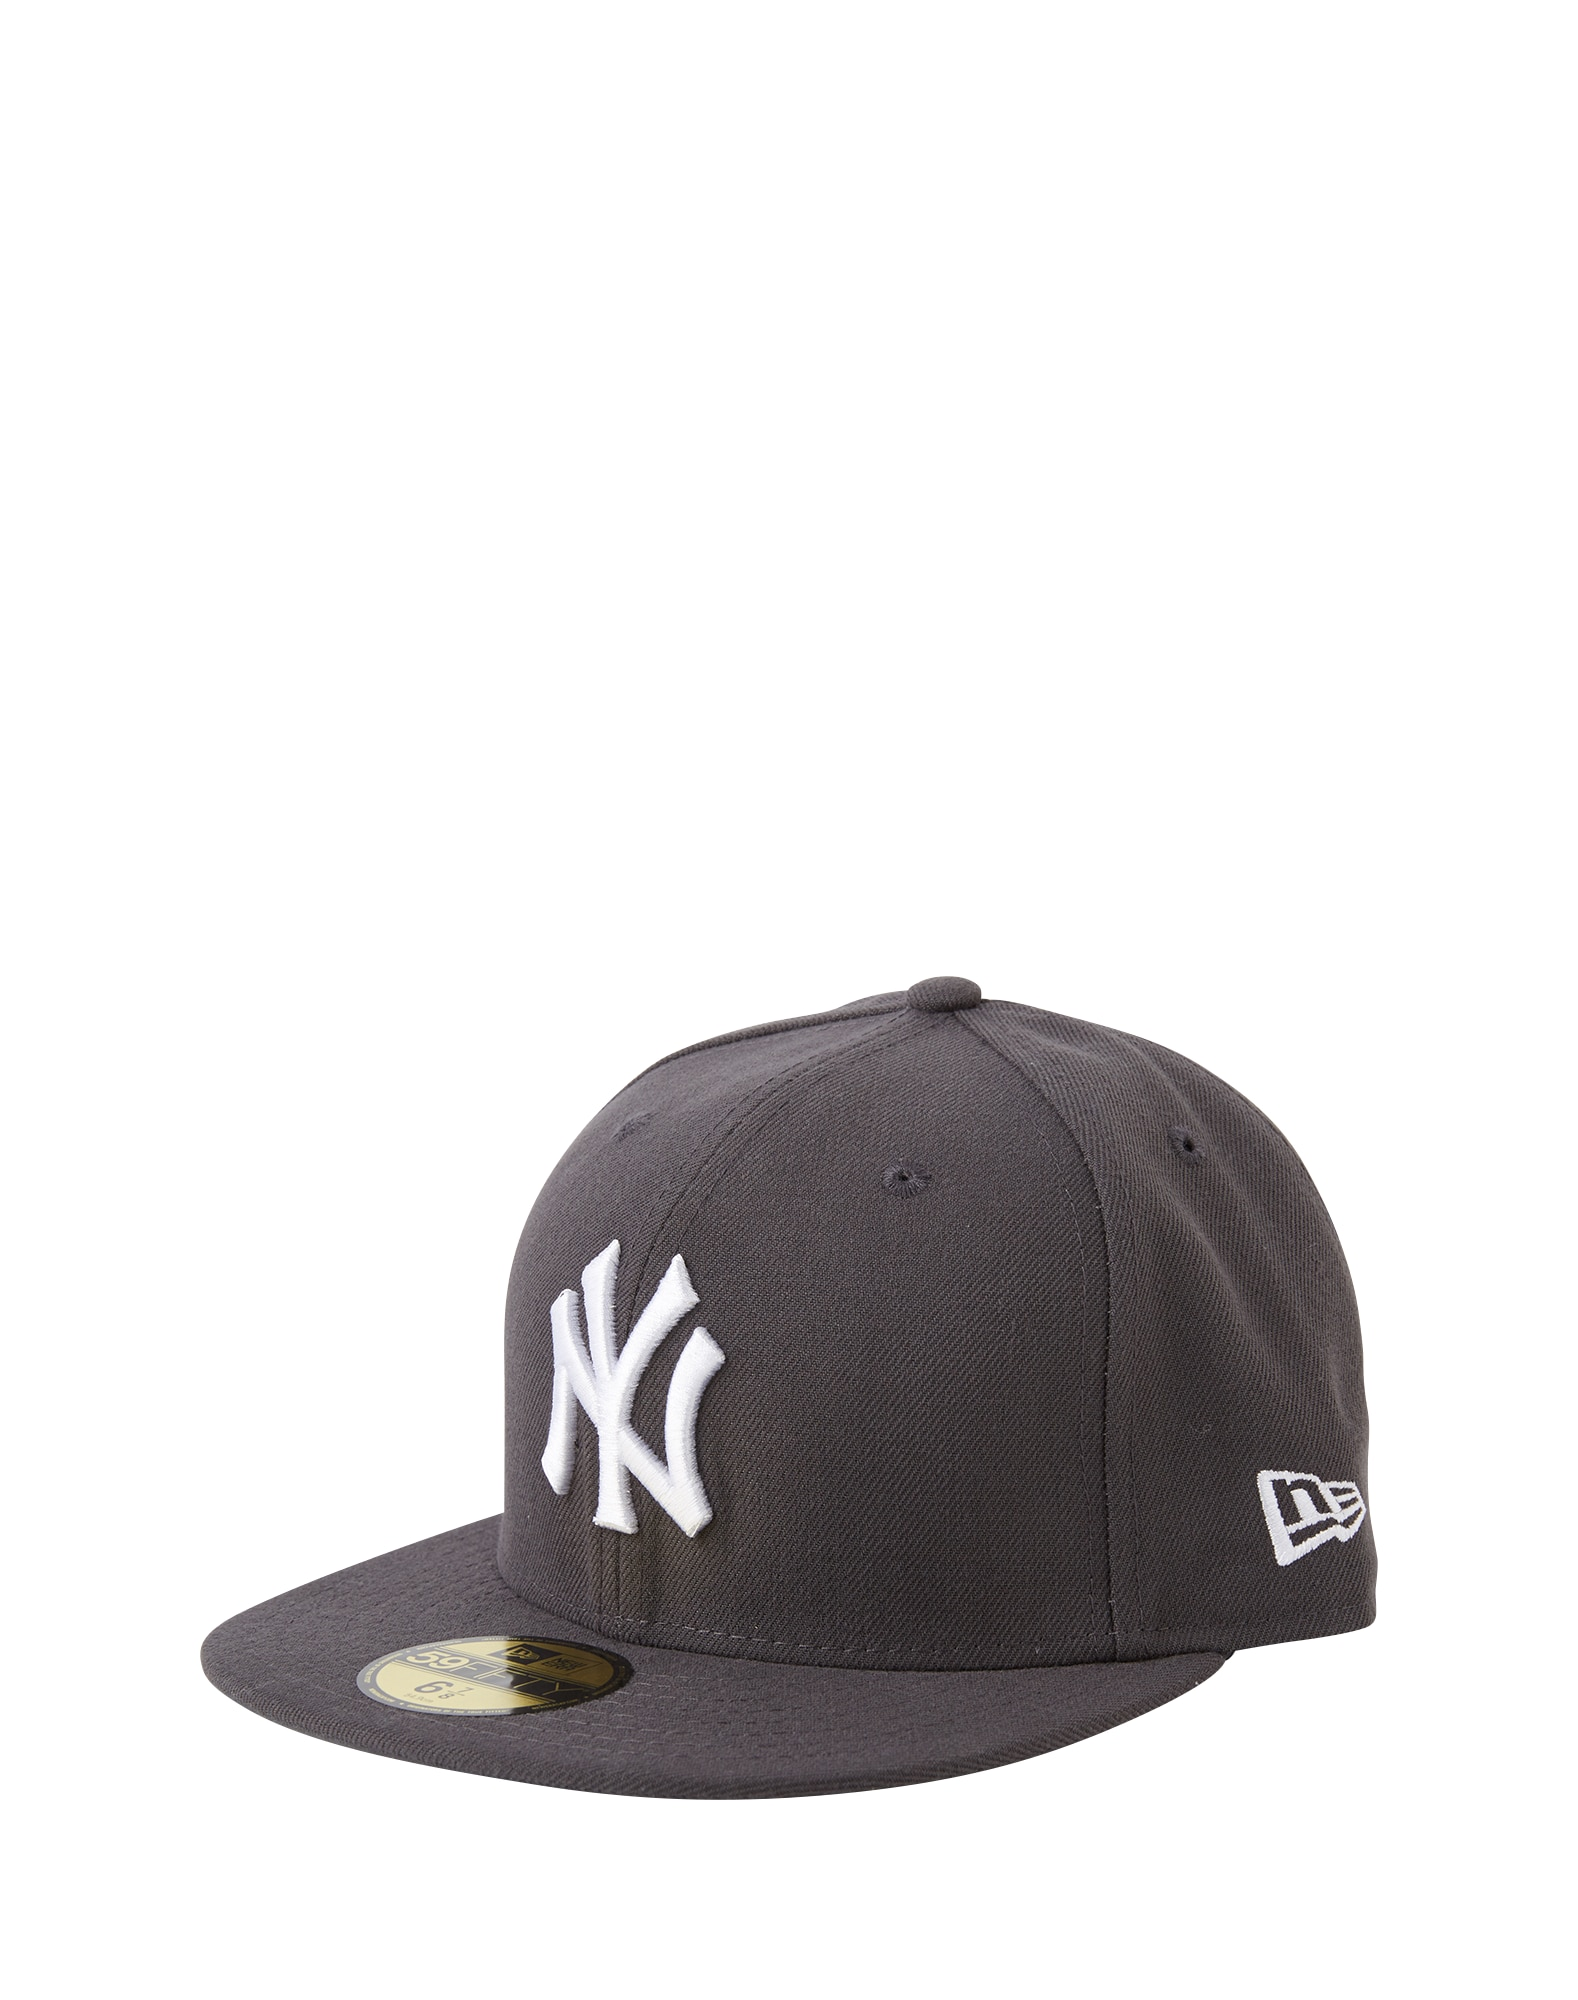 Kšiltovka 59FIFTY MLB Basic New York Yankees šedá tmavě šedá NEW ERA